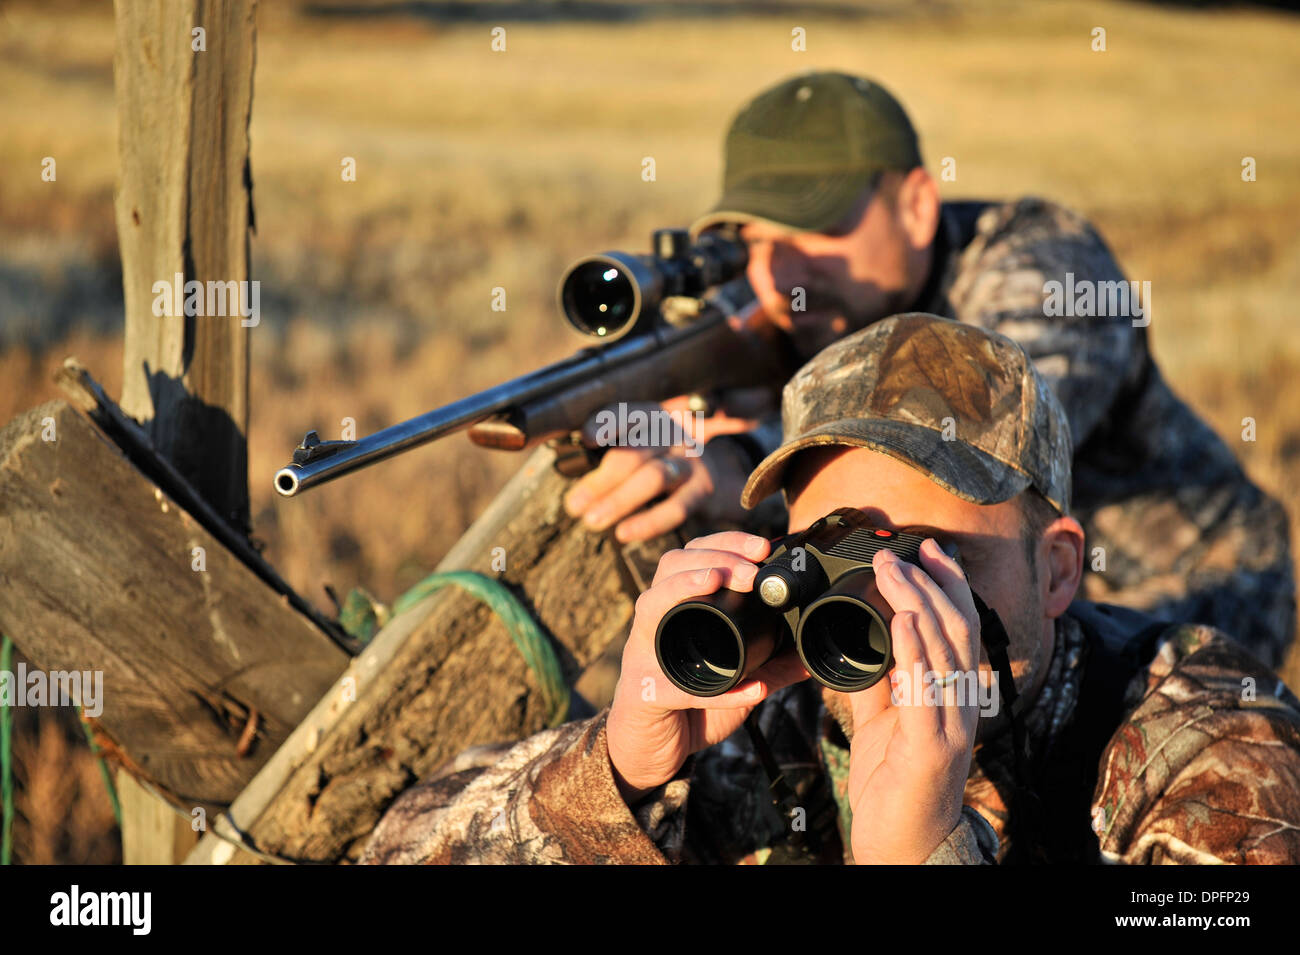 johnday elena kazan gets lifetime experience while filming john  two deer hunters rifle and binoculars john day oregon usa stock photo two deer hunters rifle